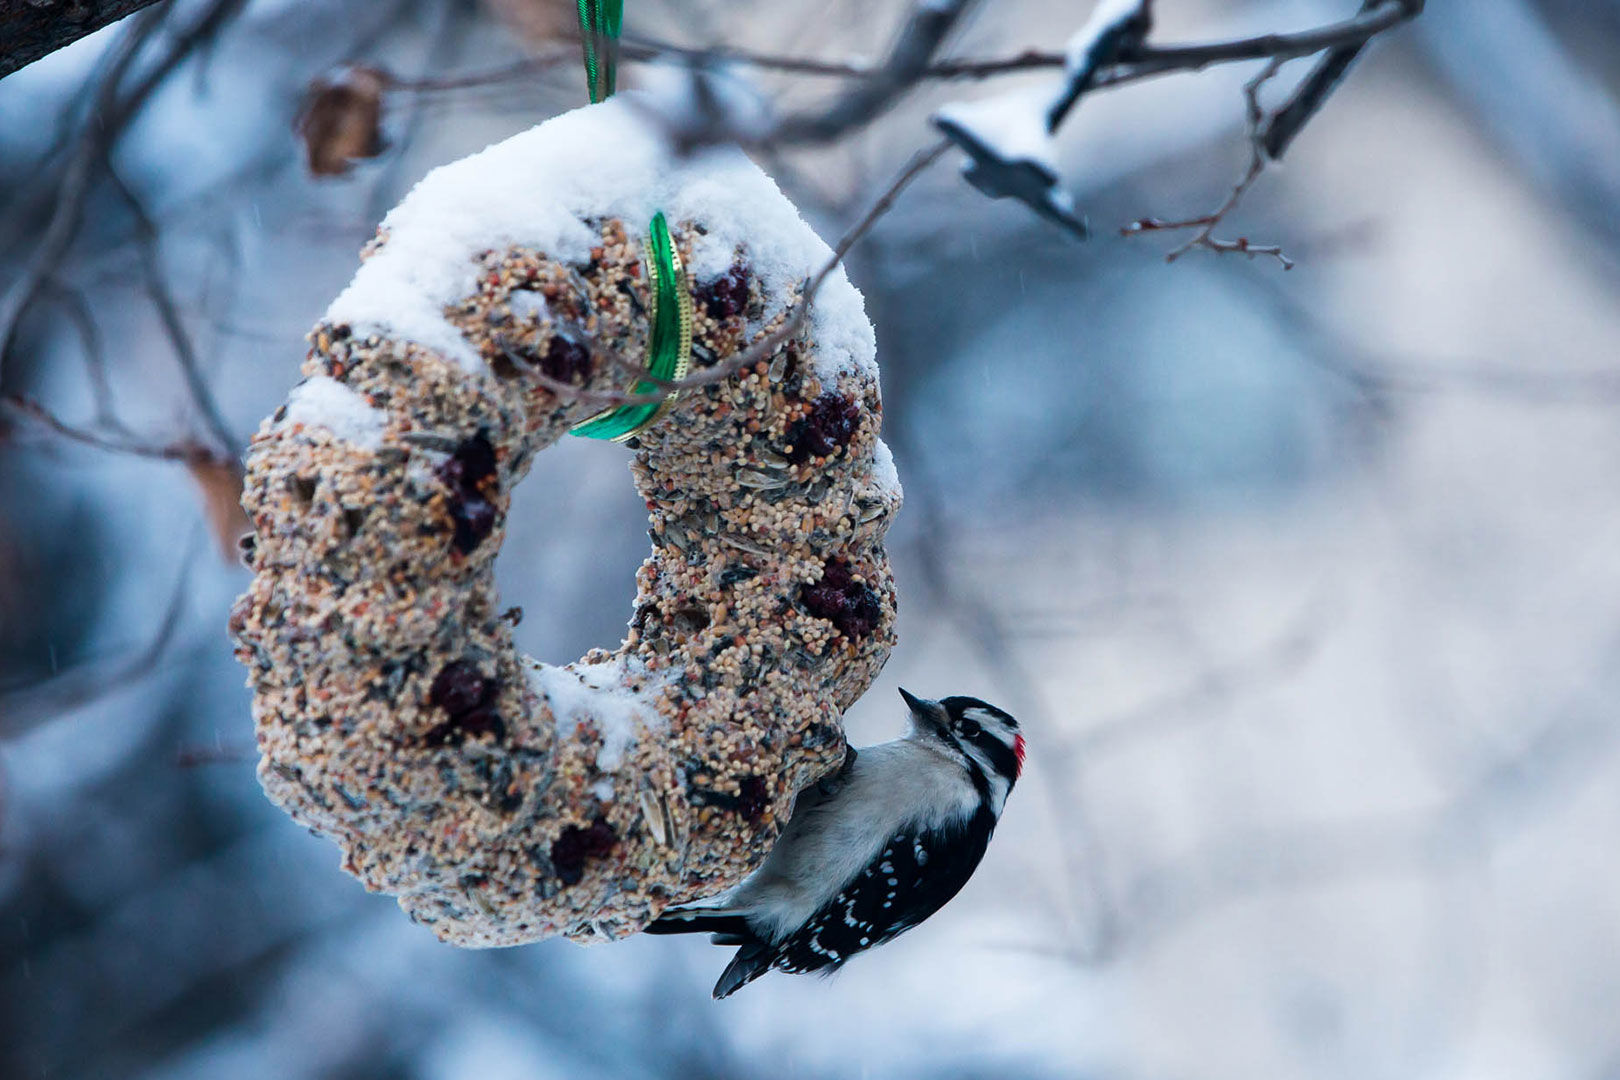 Treat Your Local Birds to Some Holiday Home-Cooking with This Festive DIY Wreath